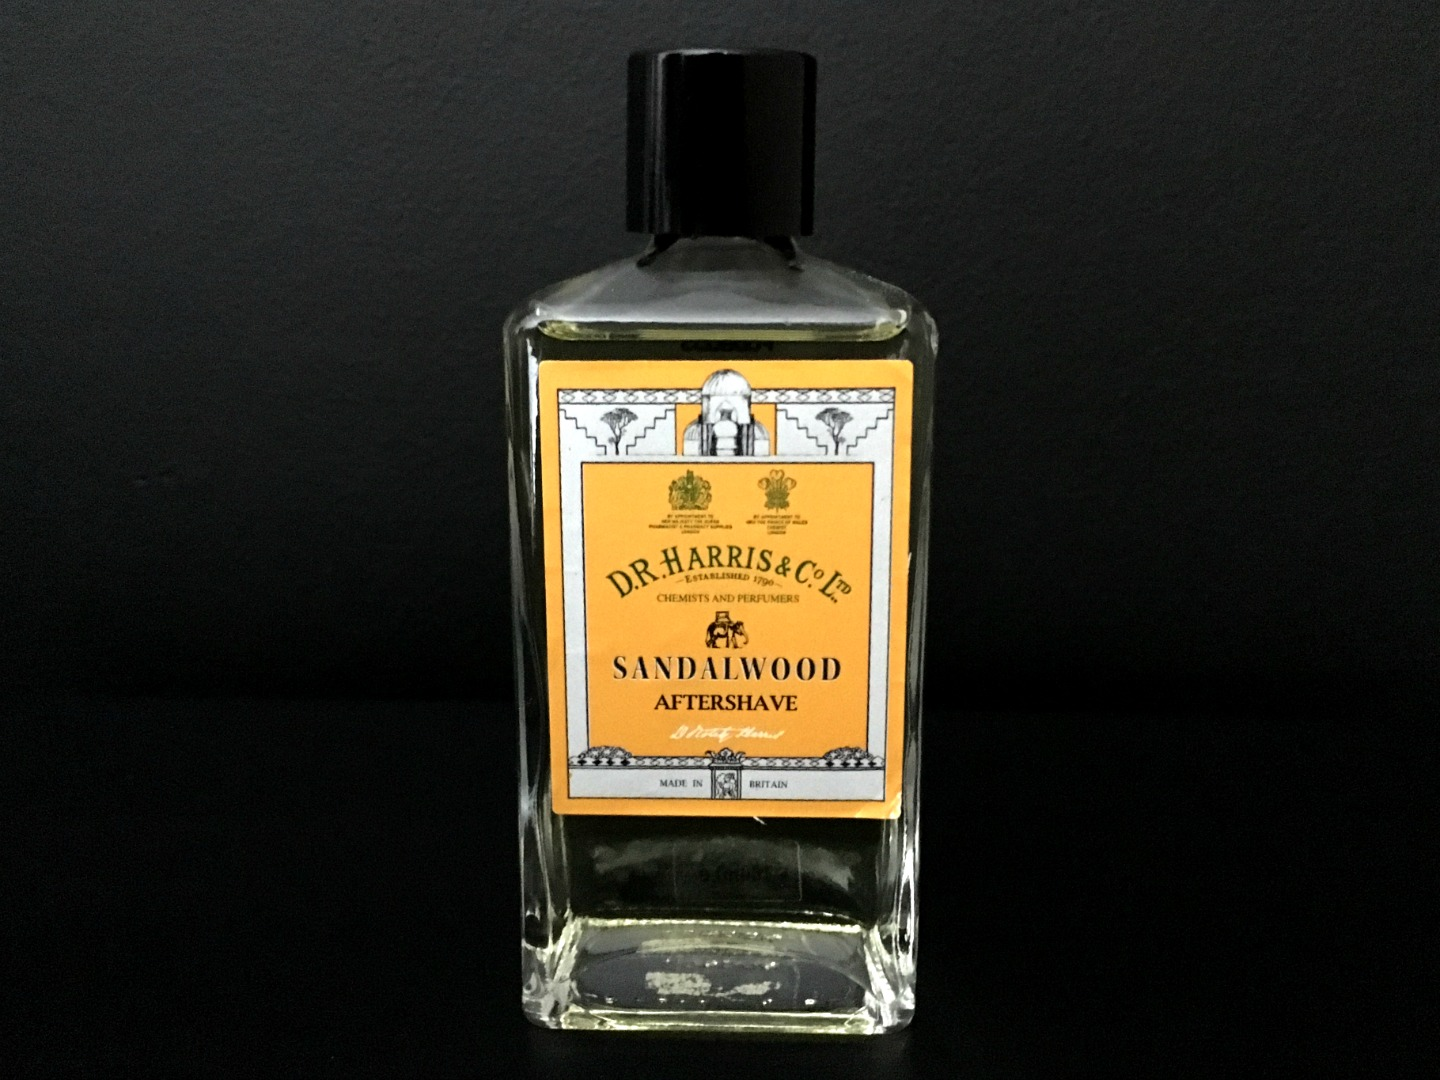 D.R. Harris Sandalwood Aftershave